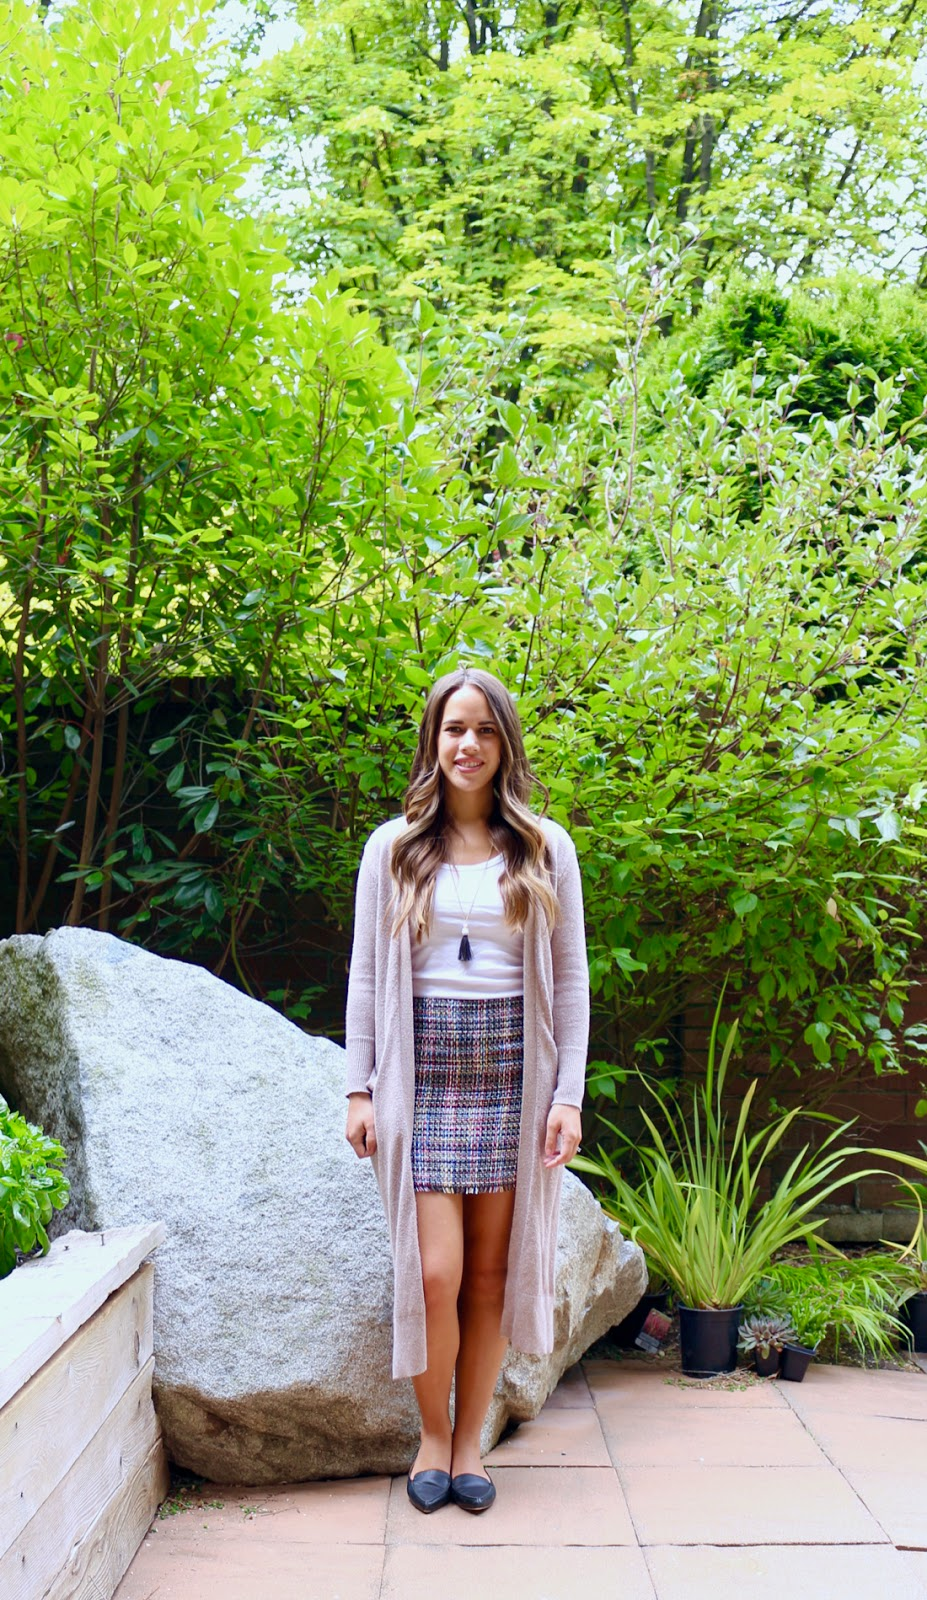 Jules in Flats - H&M Tweed Mini Skirt + Duster Cardigan (Business Casual Spring Workwear on a Budget)